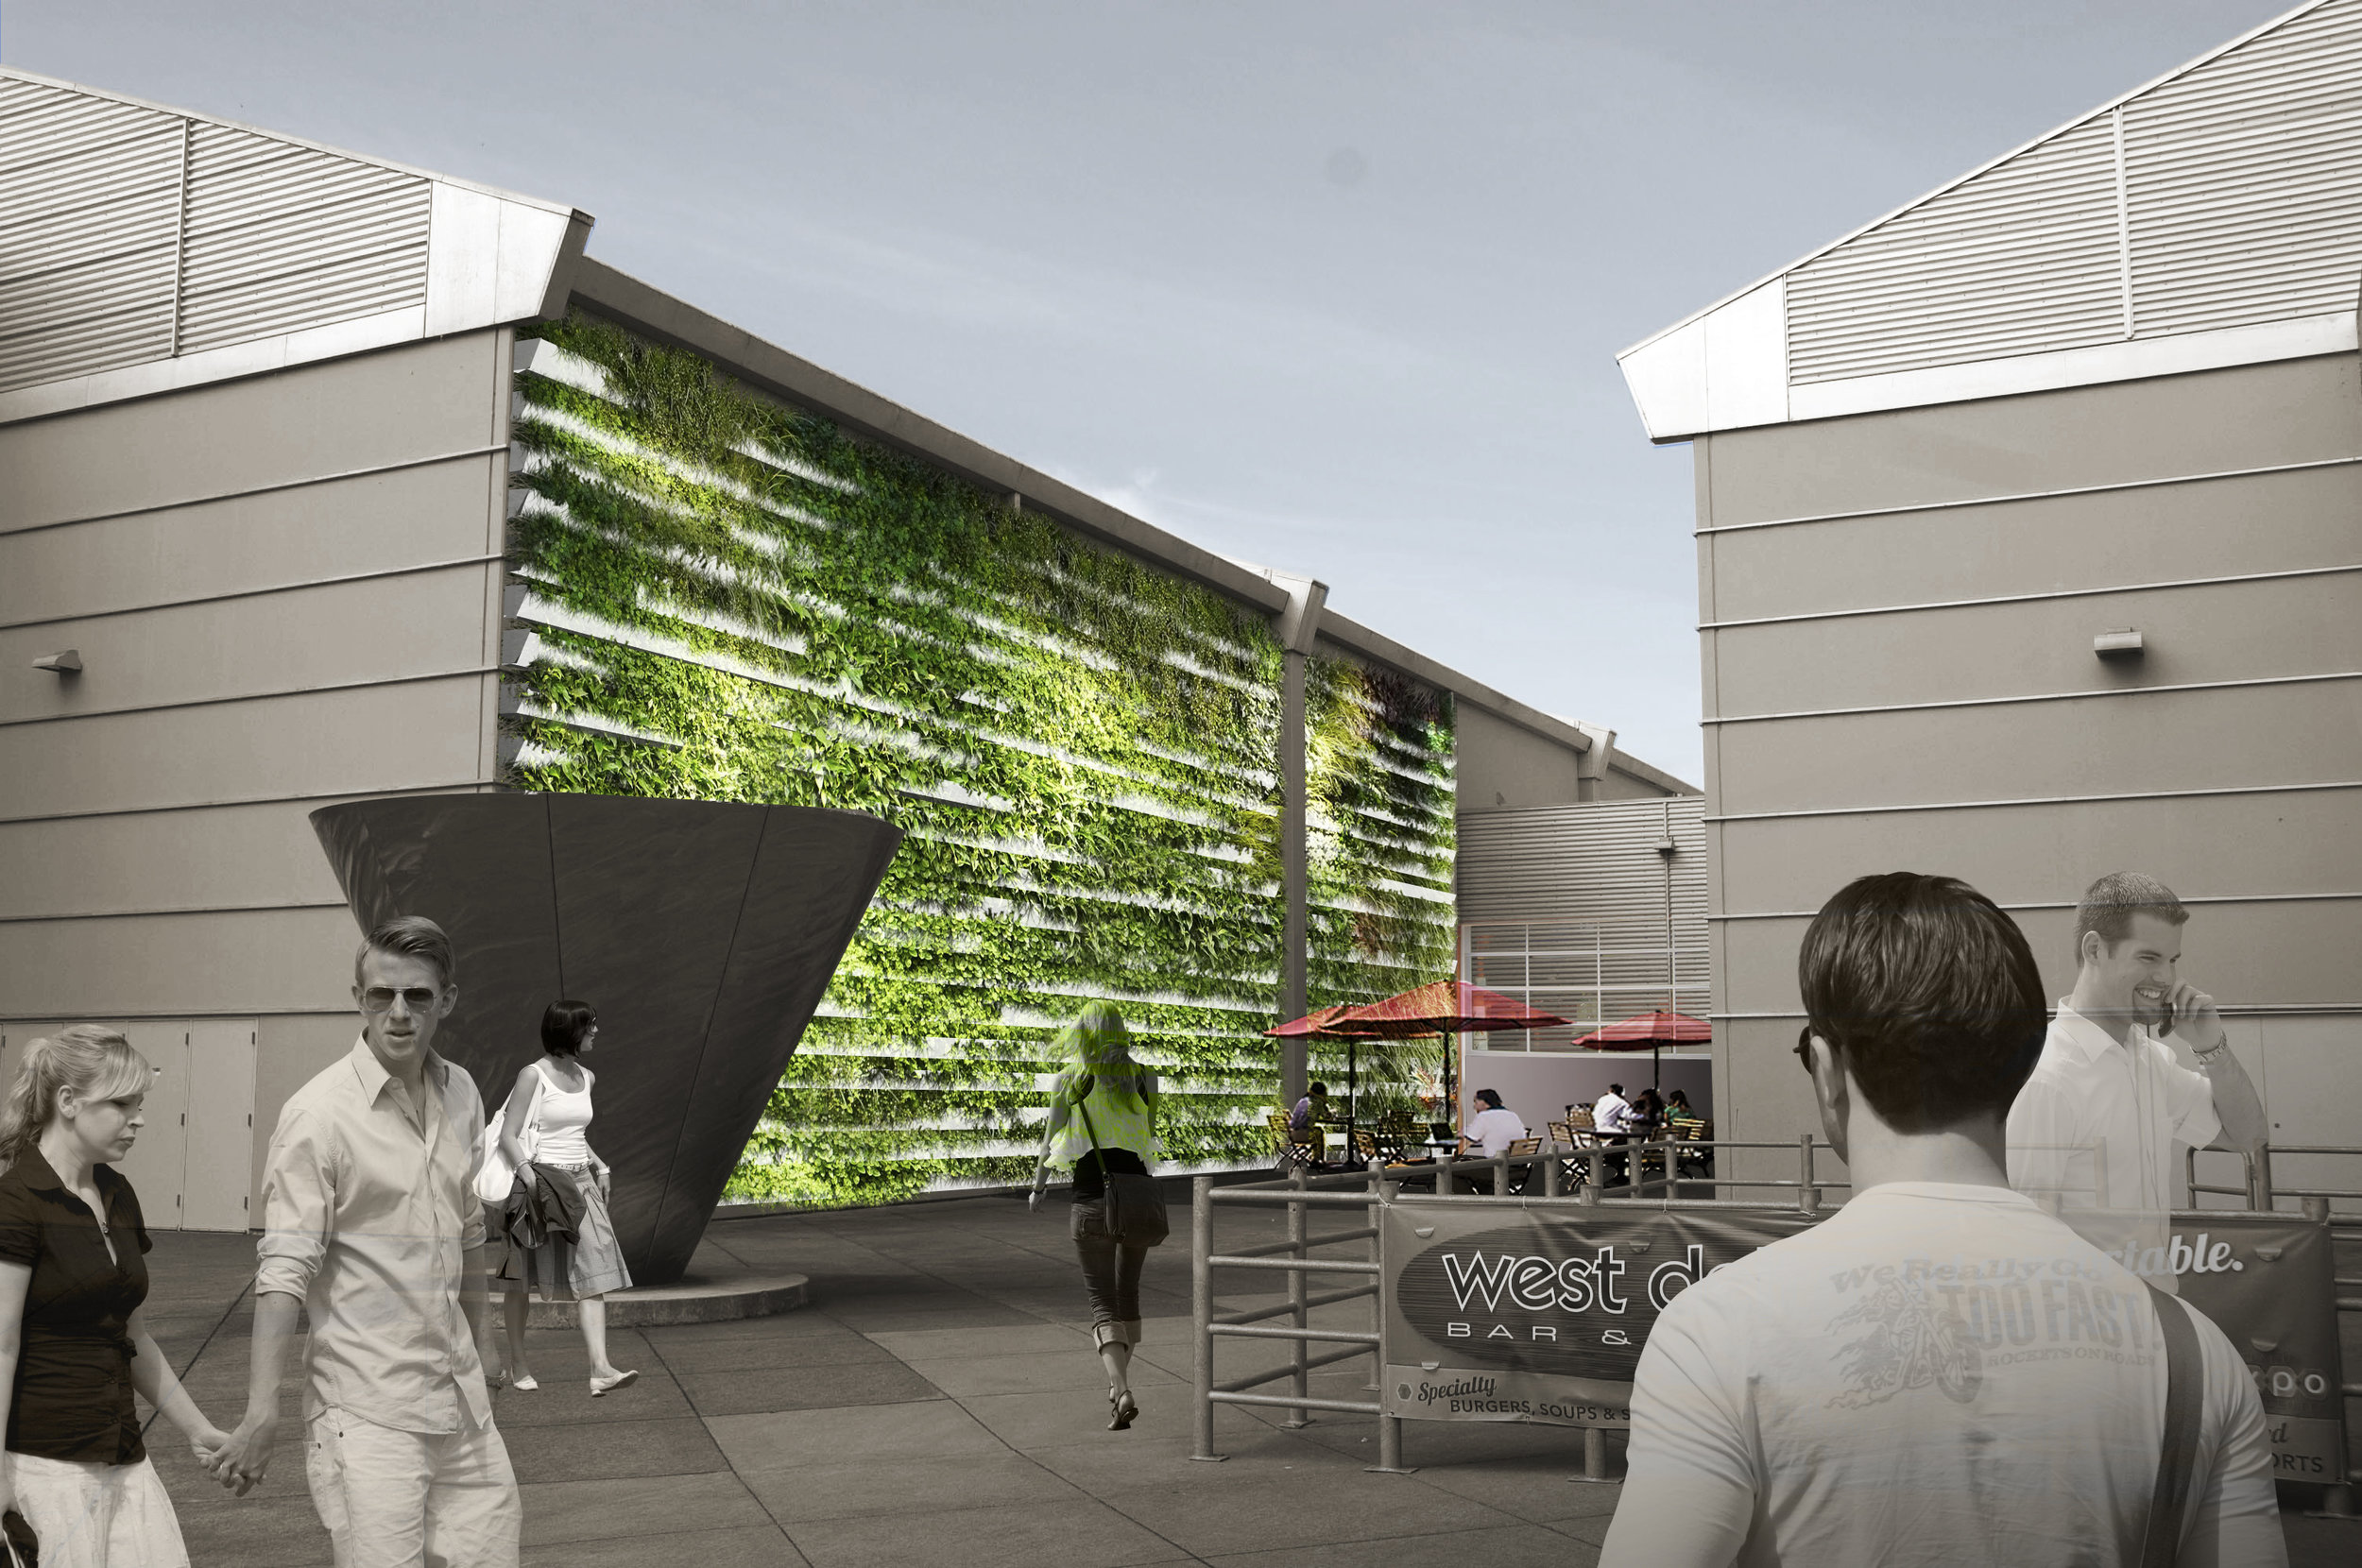 computer generated green wall concept with layered vegetated basins